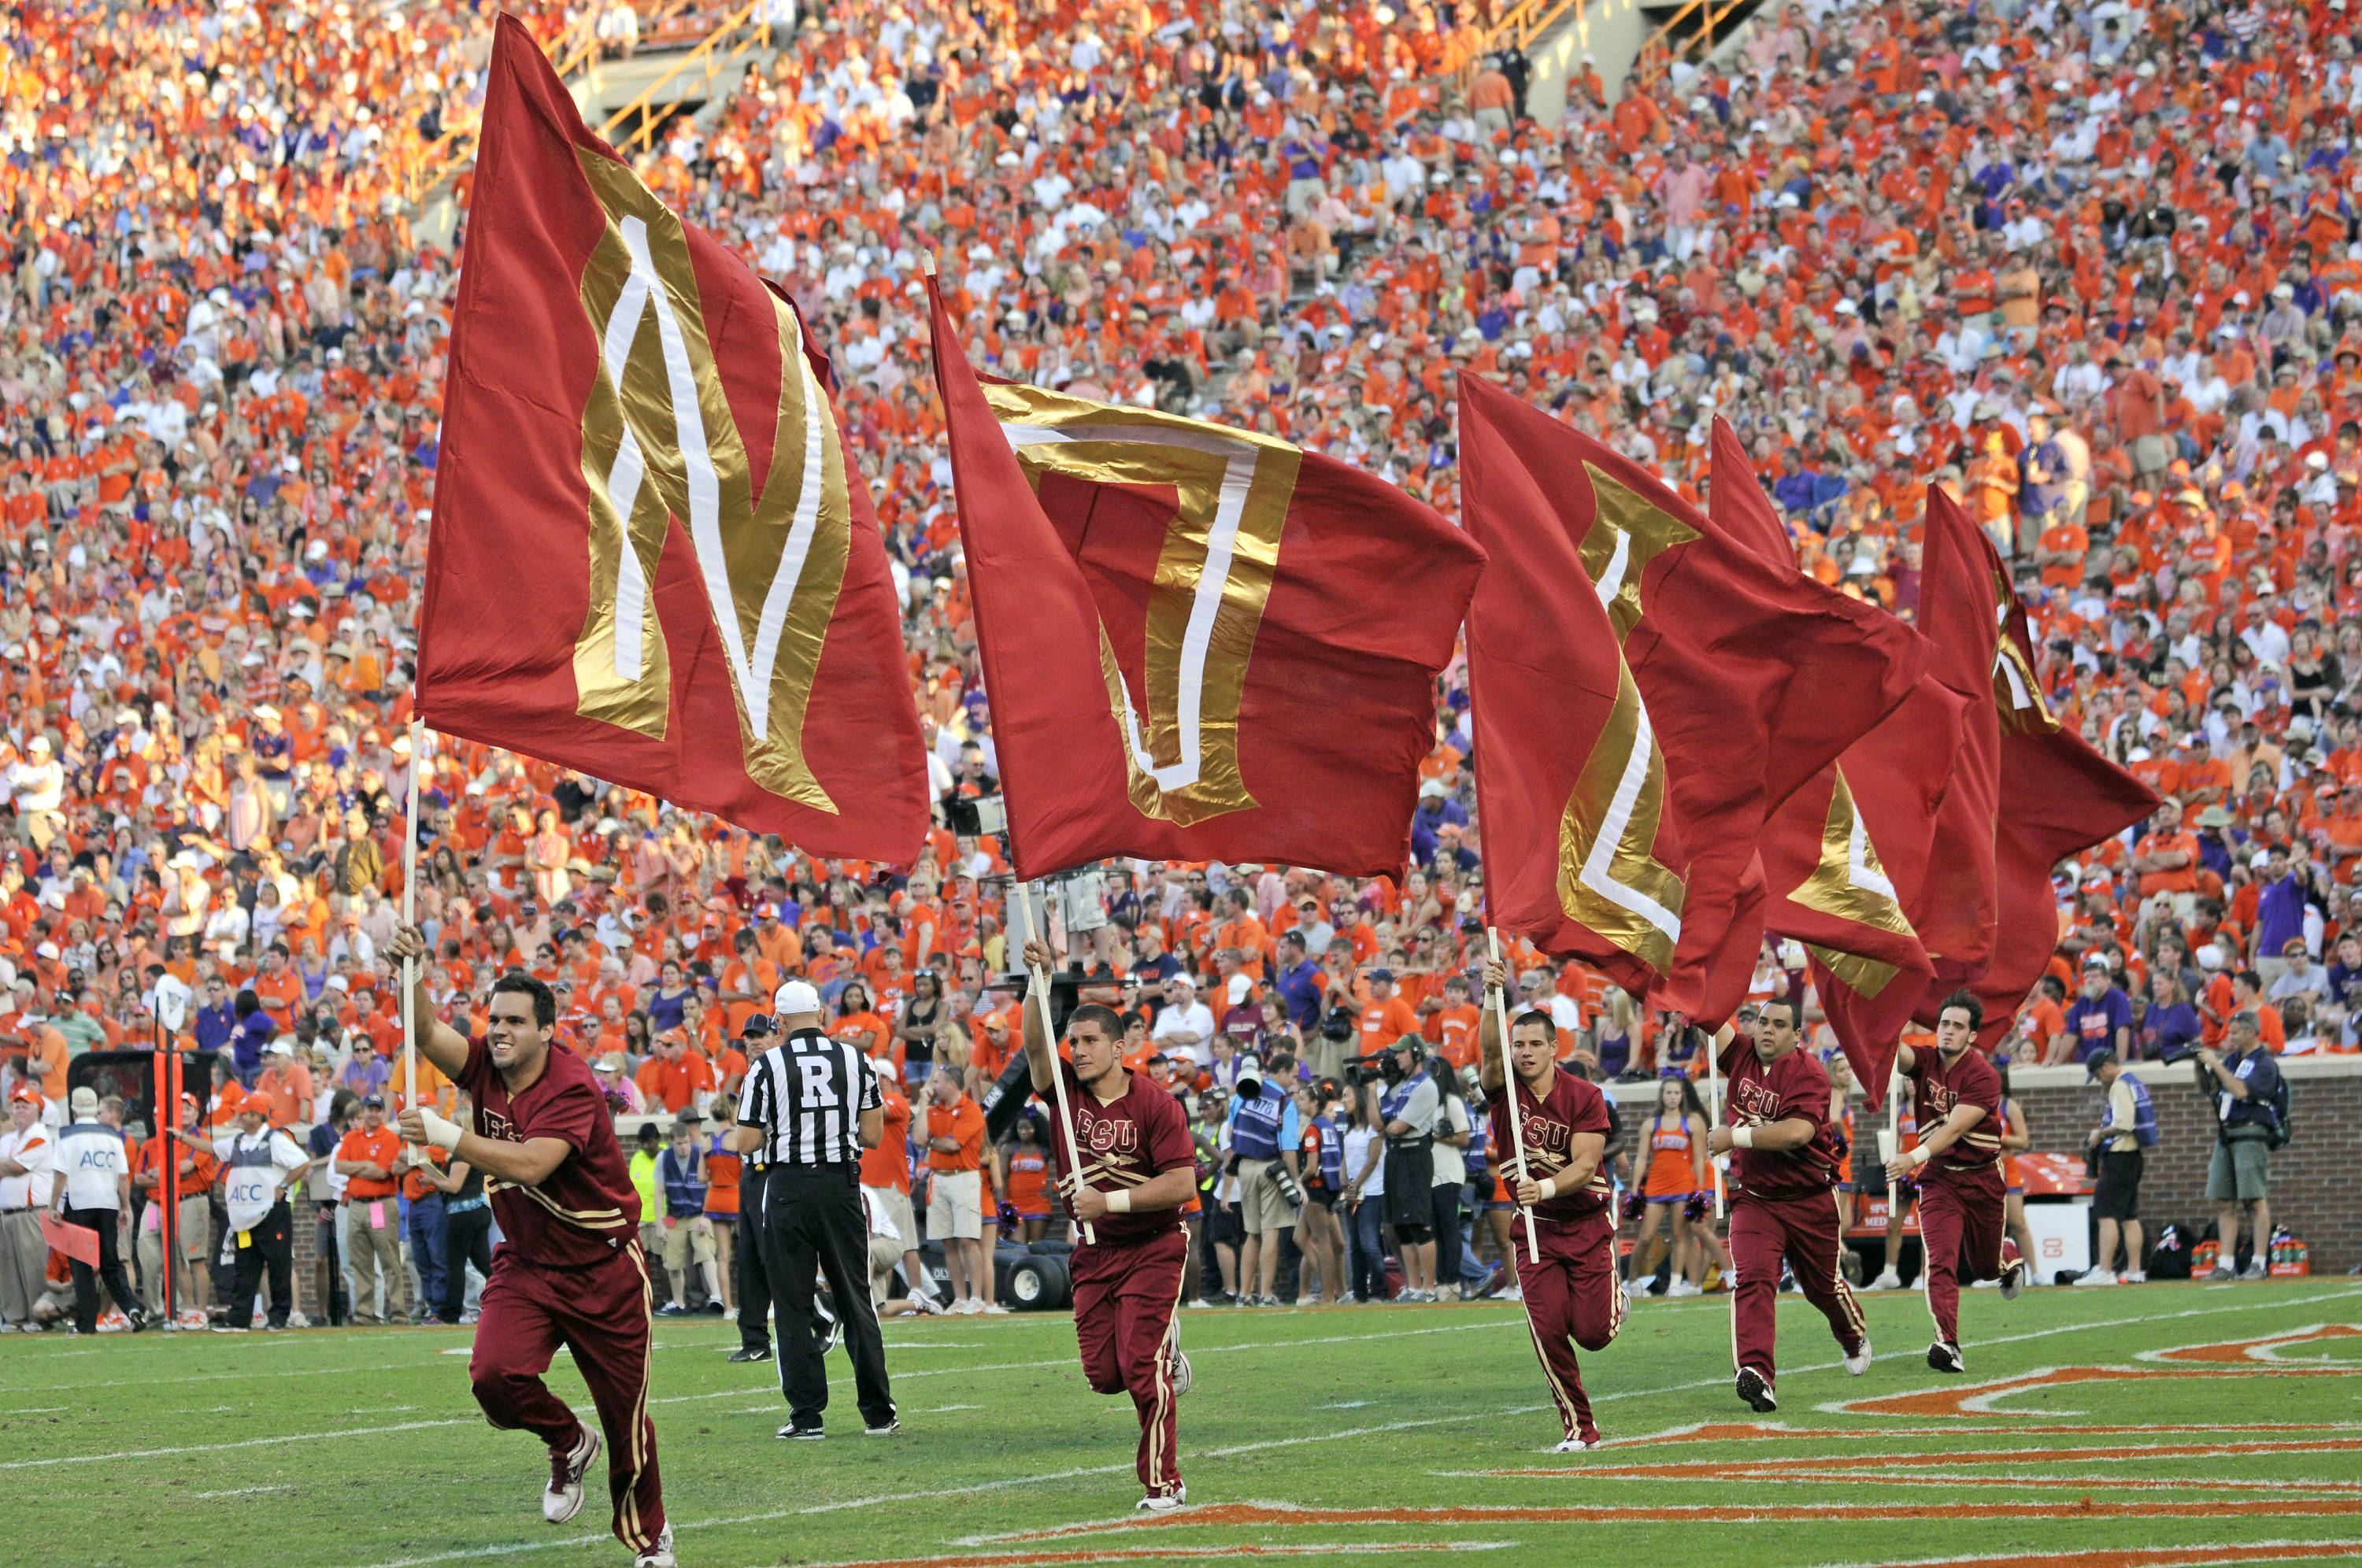 Florida State cheerleaders celebrate after a touchdown